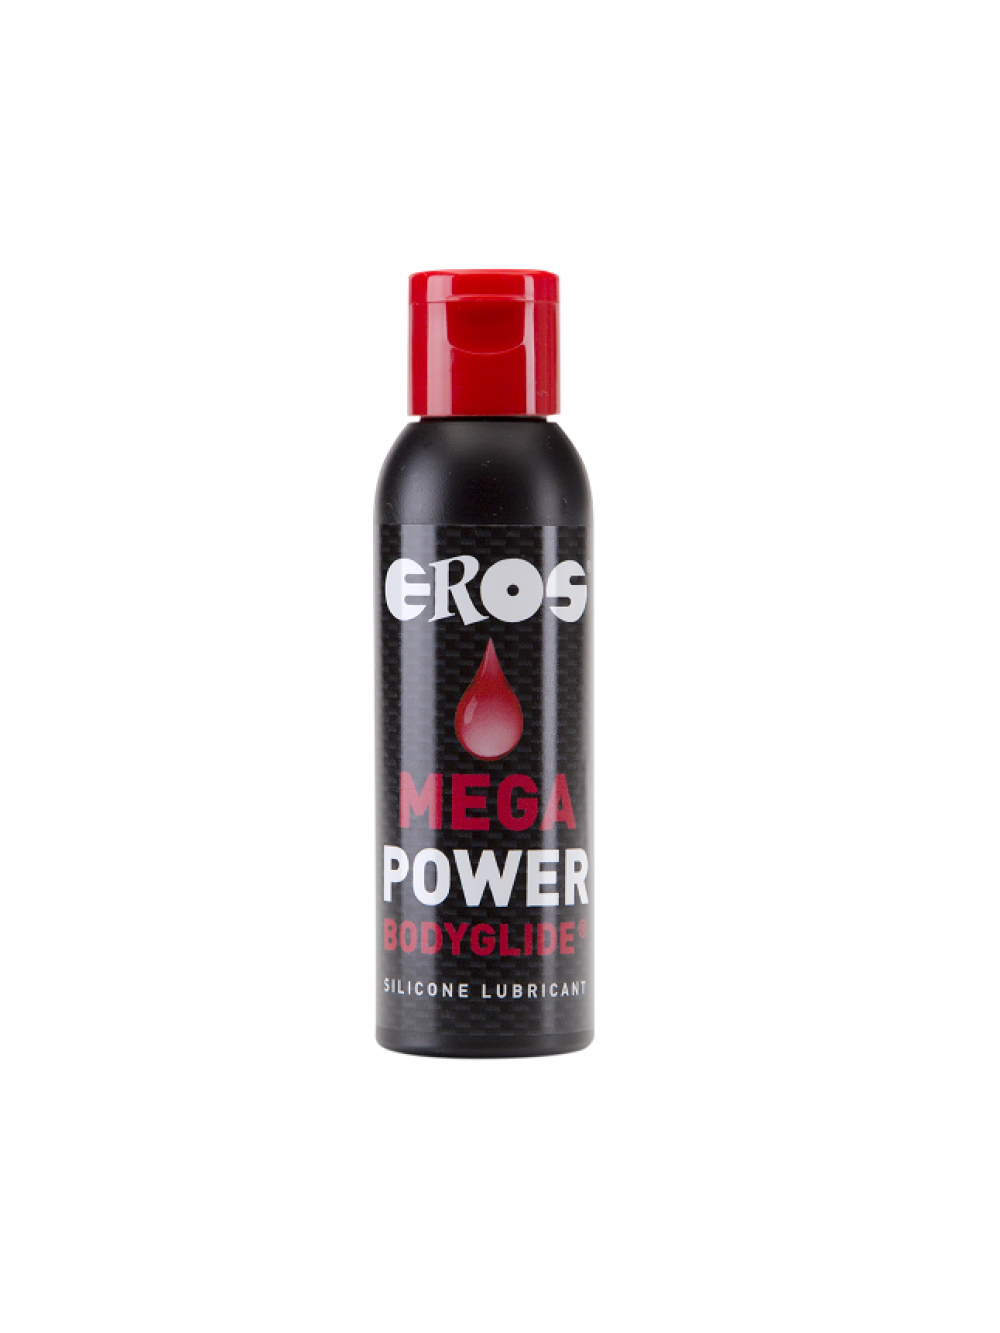 EROS MEGA POWER BODYGLIDE SILICONE LUBRICANT 50ML